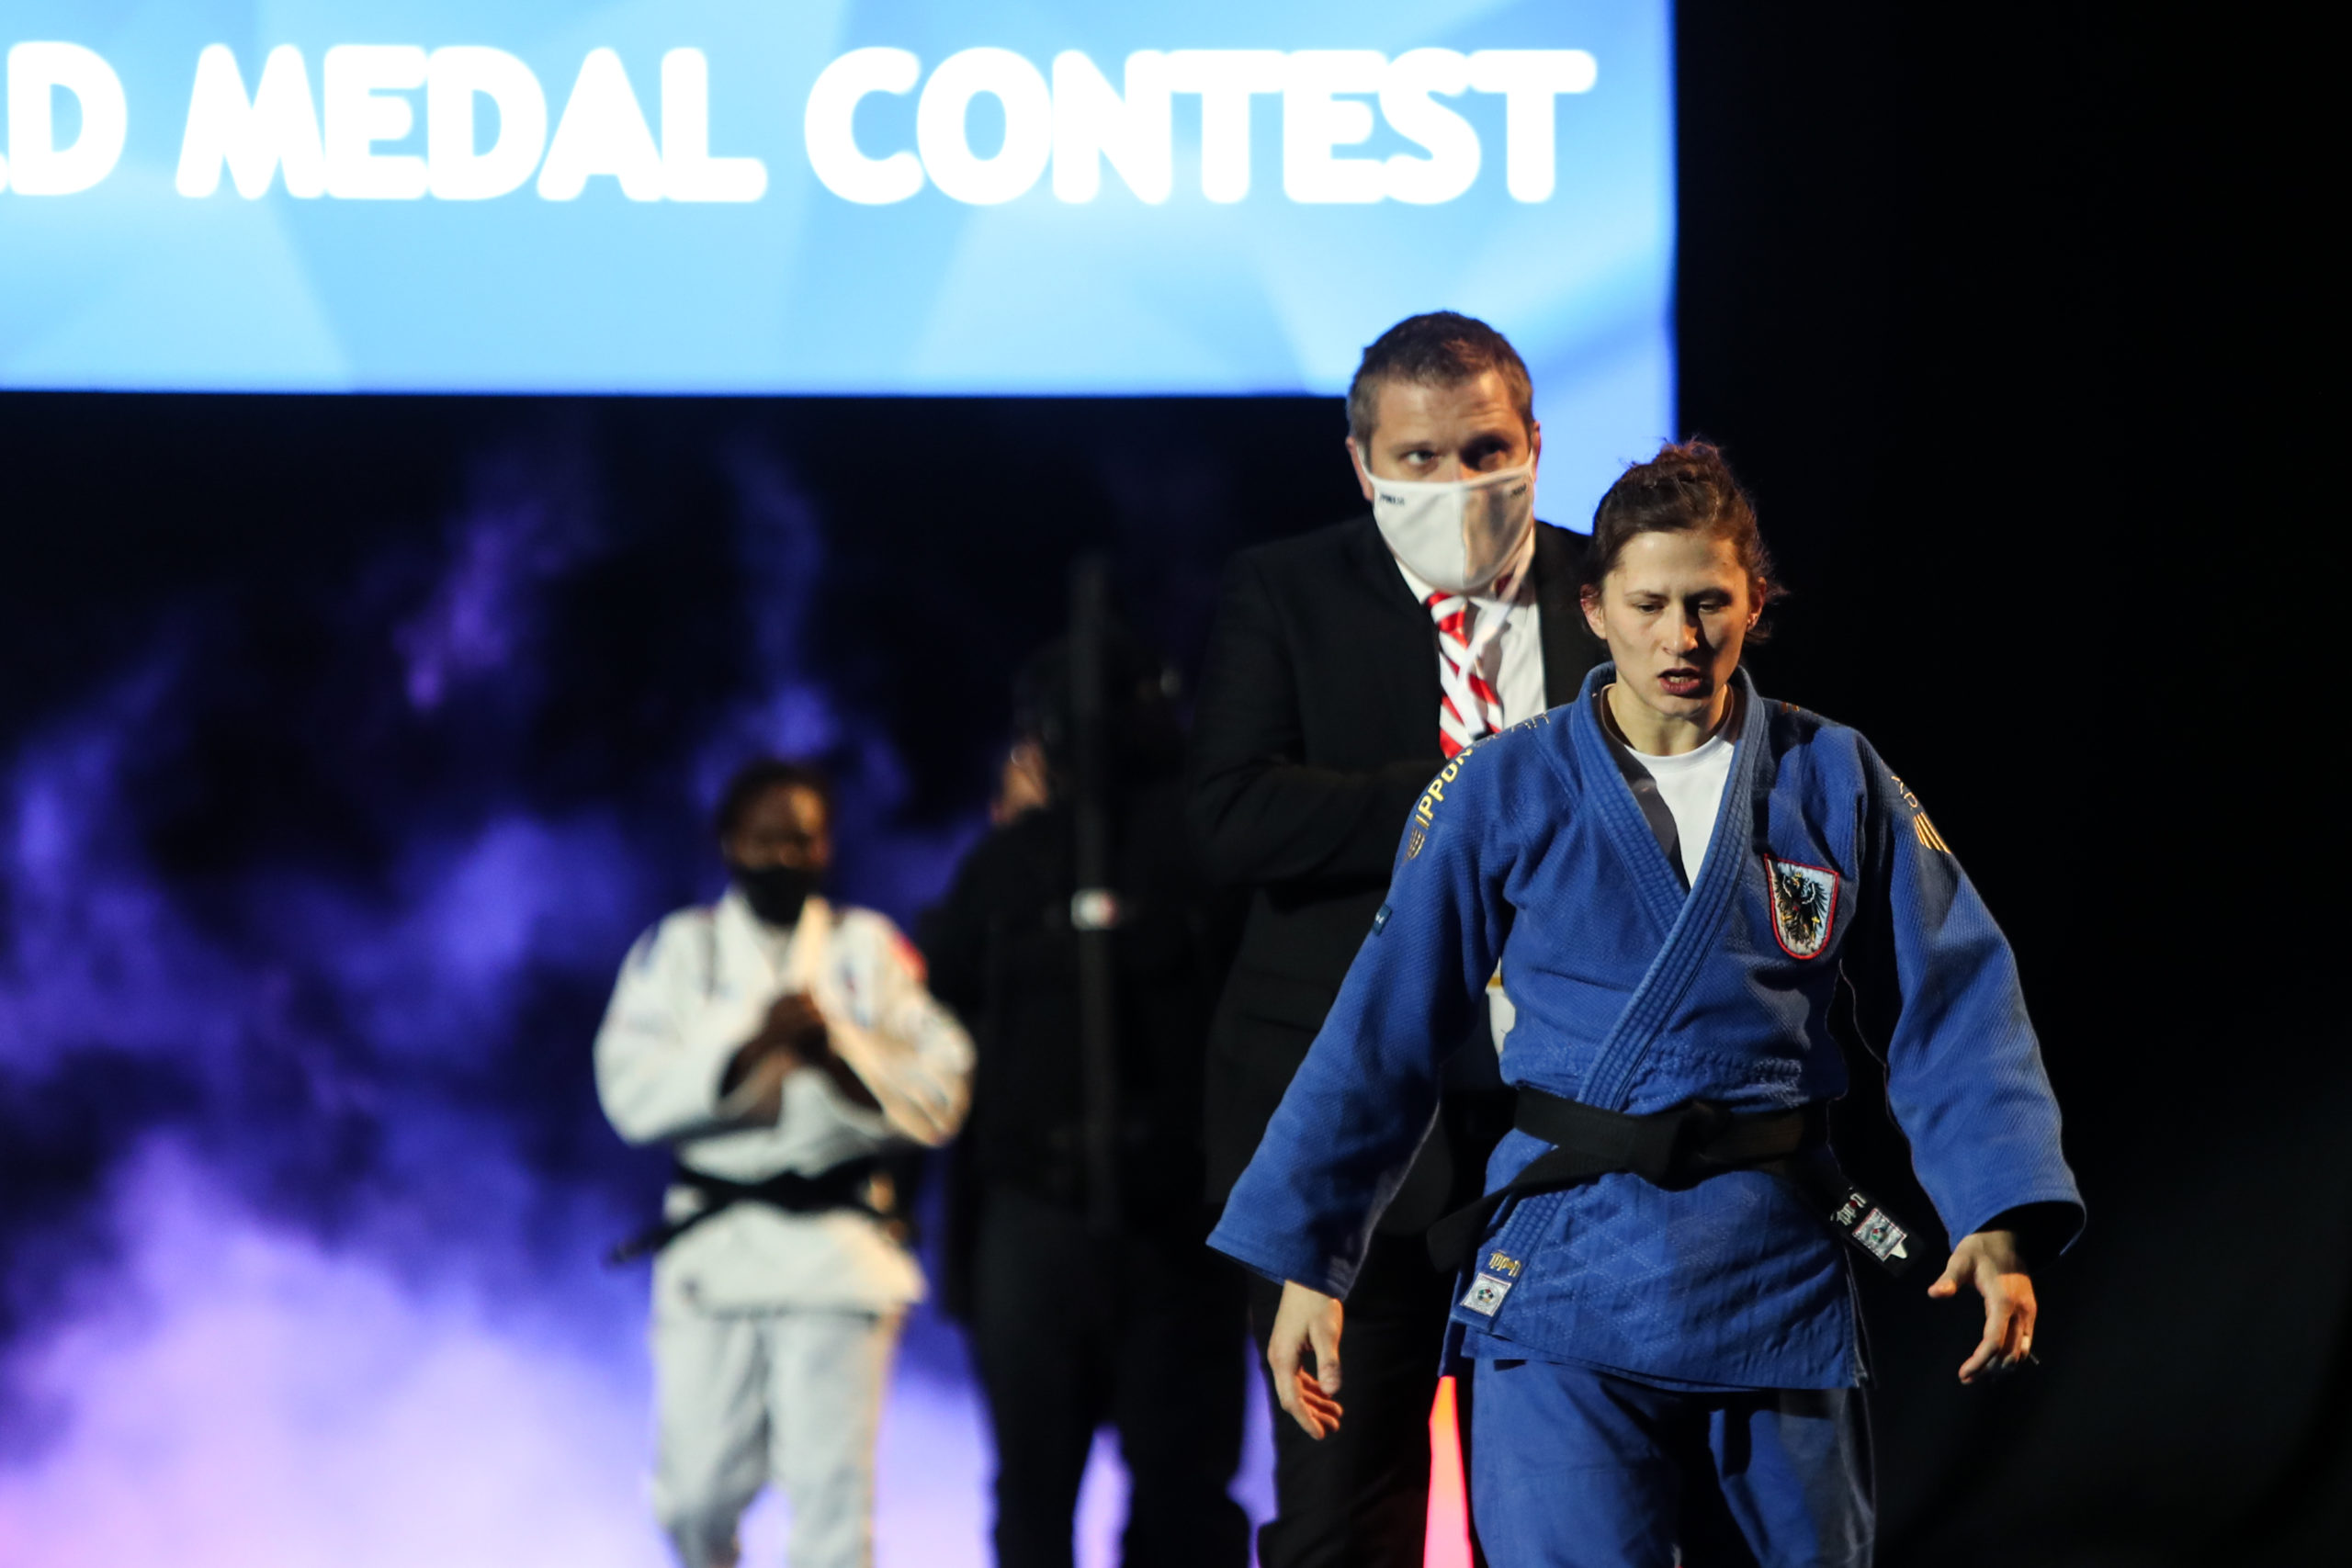 EUROPEAN CHAMPIONSHIPS 2021: DAY TWO PREVIEW